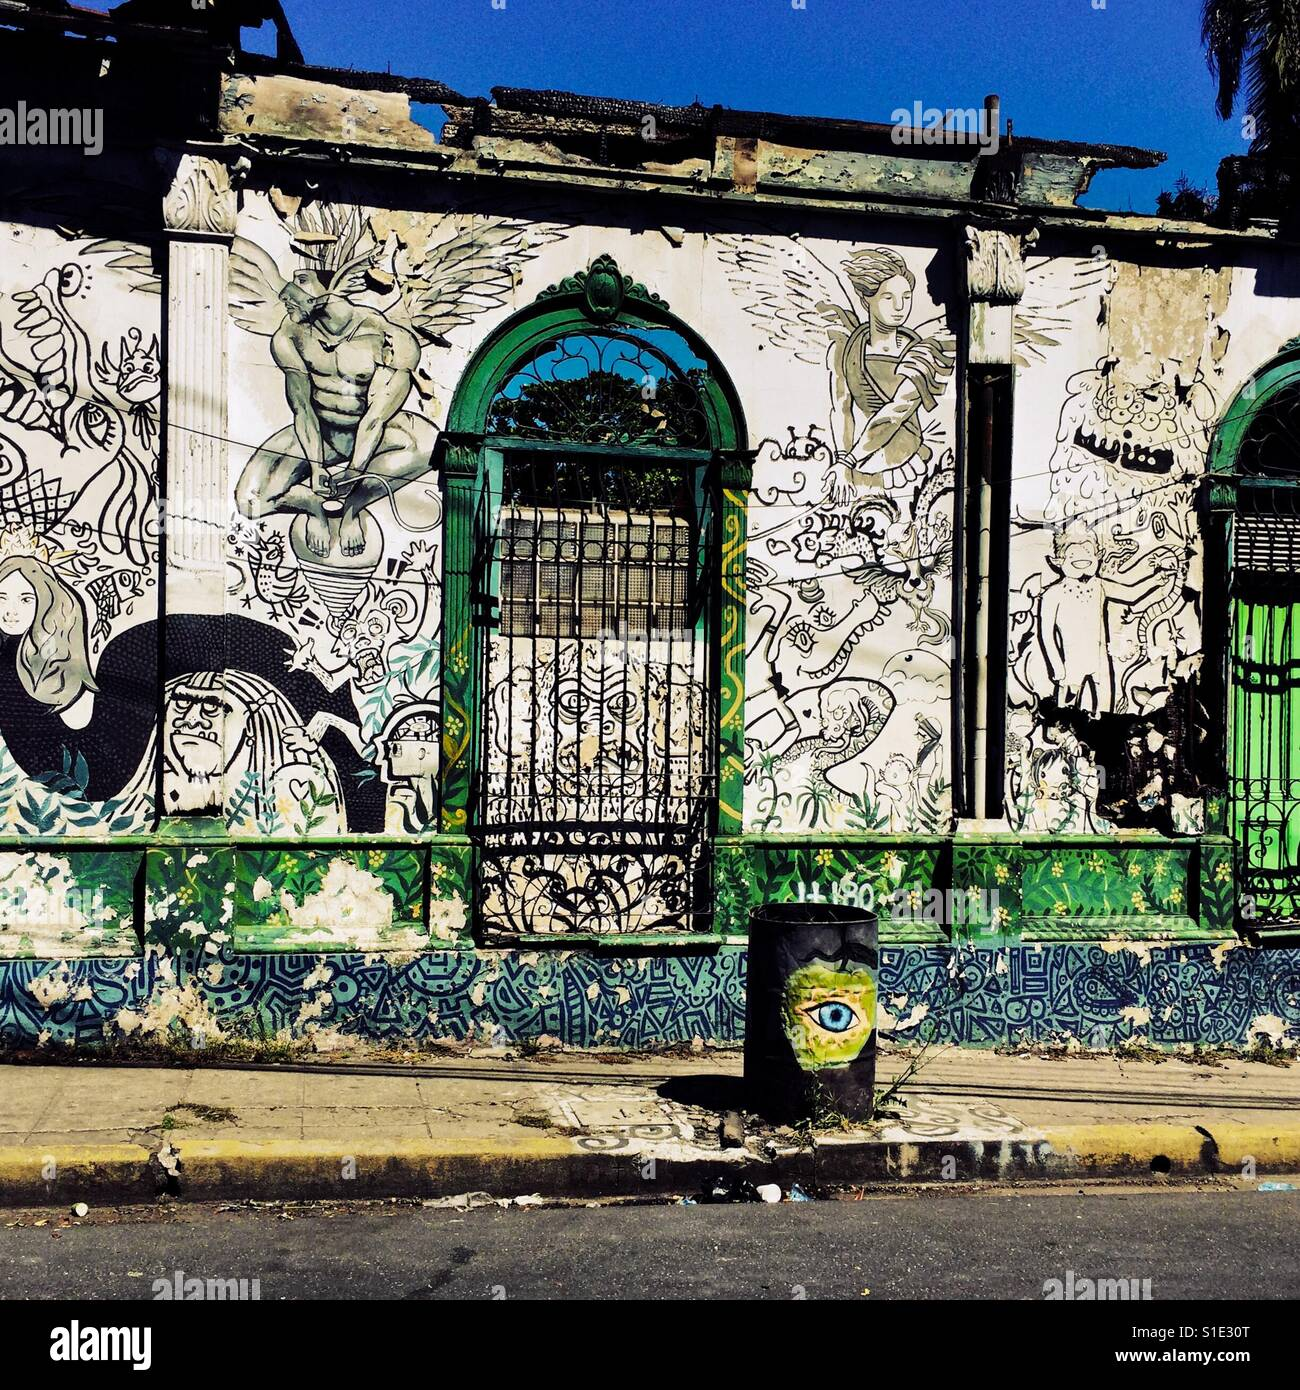 A ruined house with spanish colonial architecture elements painted a ruined house with spanish colonial architecture elements painted over by a local artist is seen in the center of san salvador el salvador freerunsca Image collections